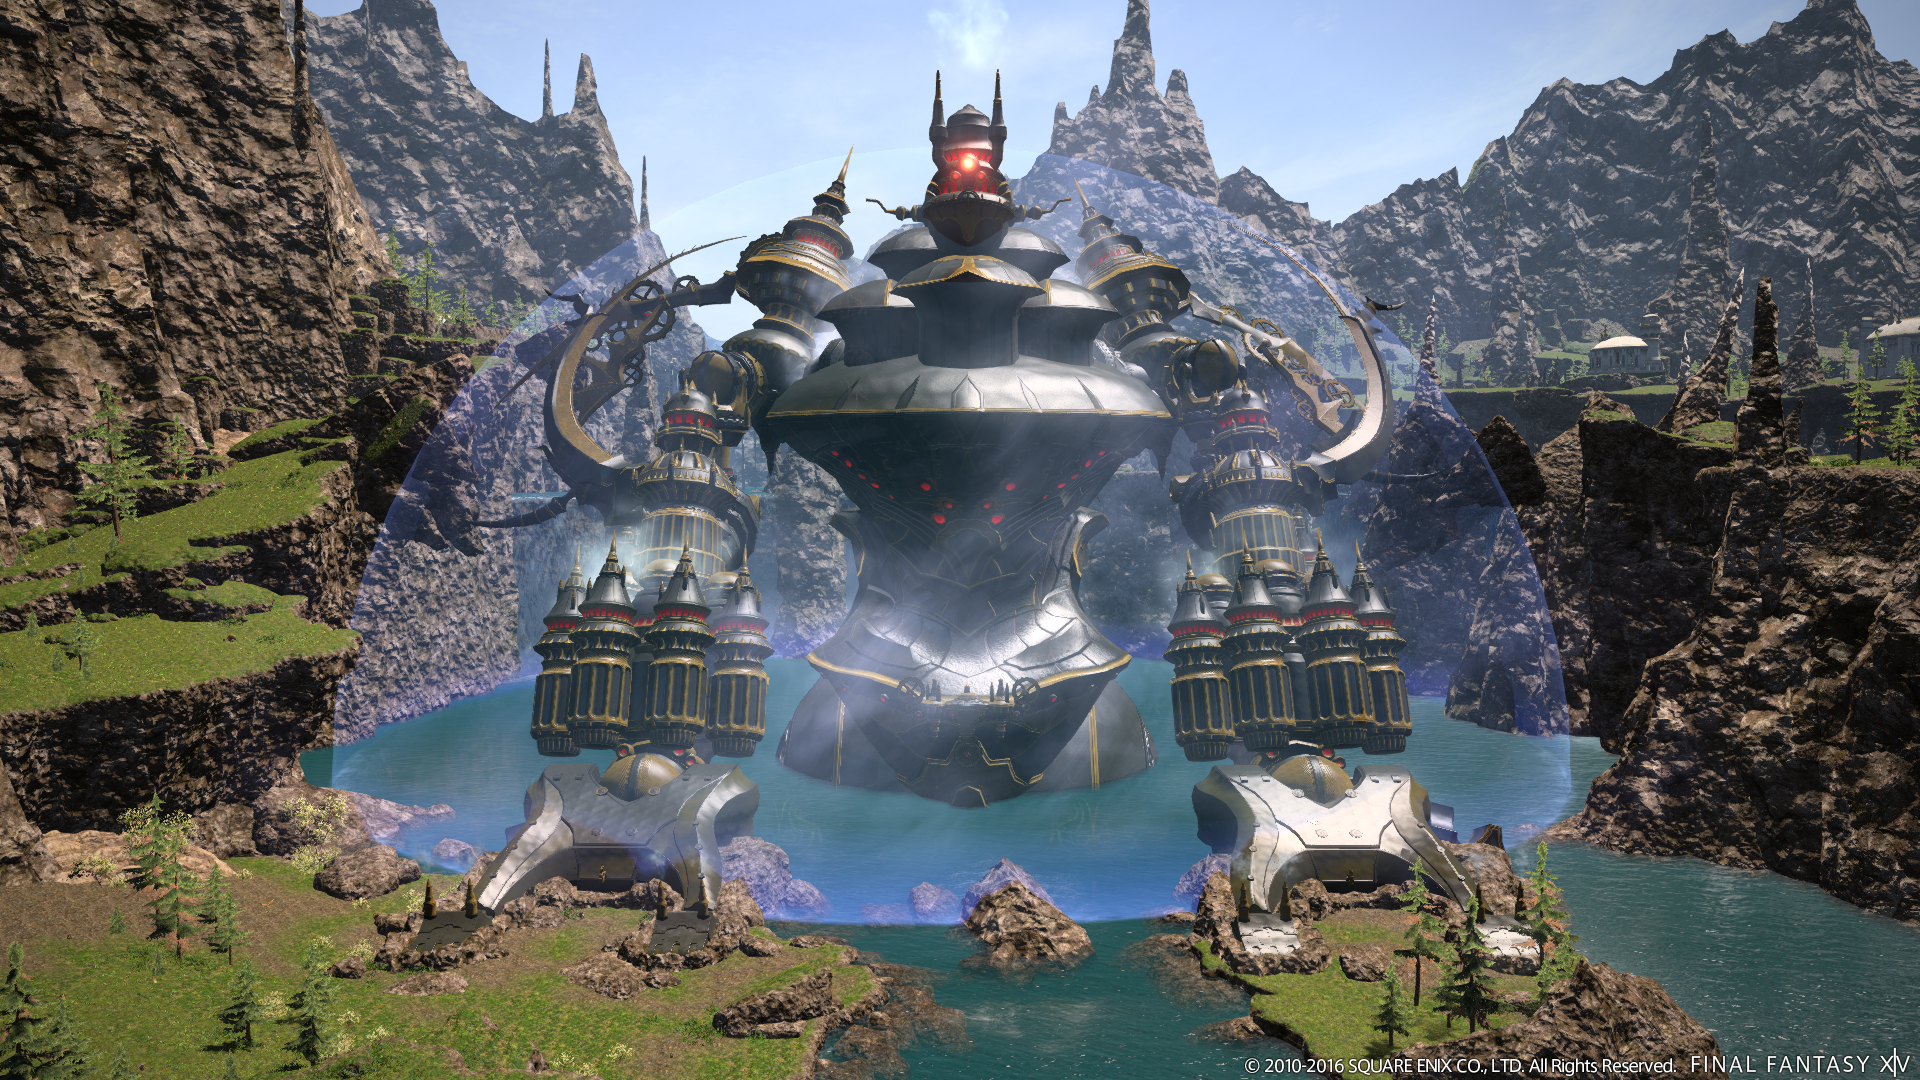 Final Fantasy XIV previews the end of Alexander and the second